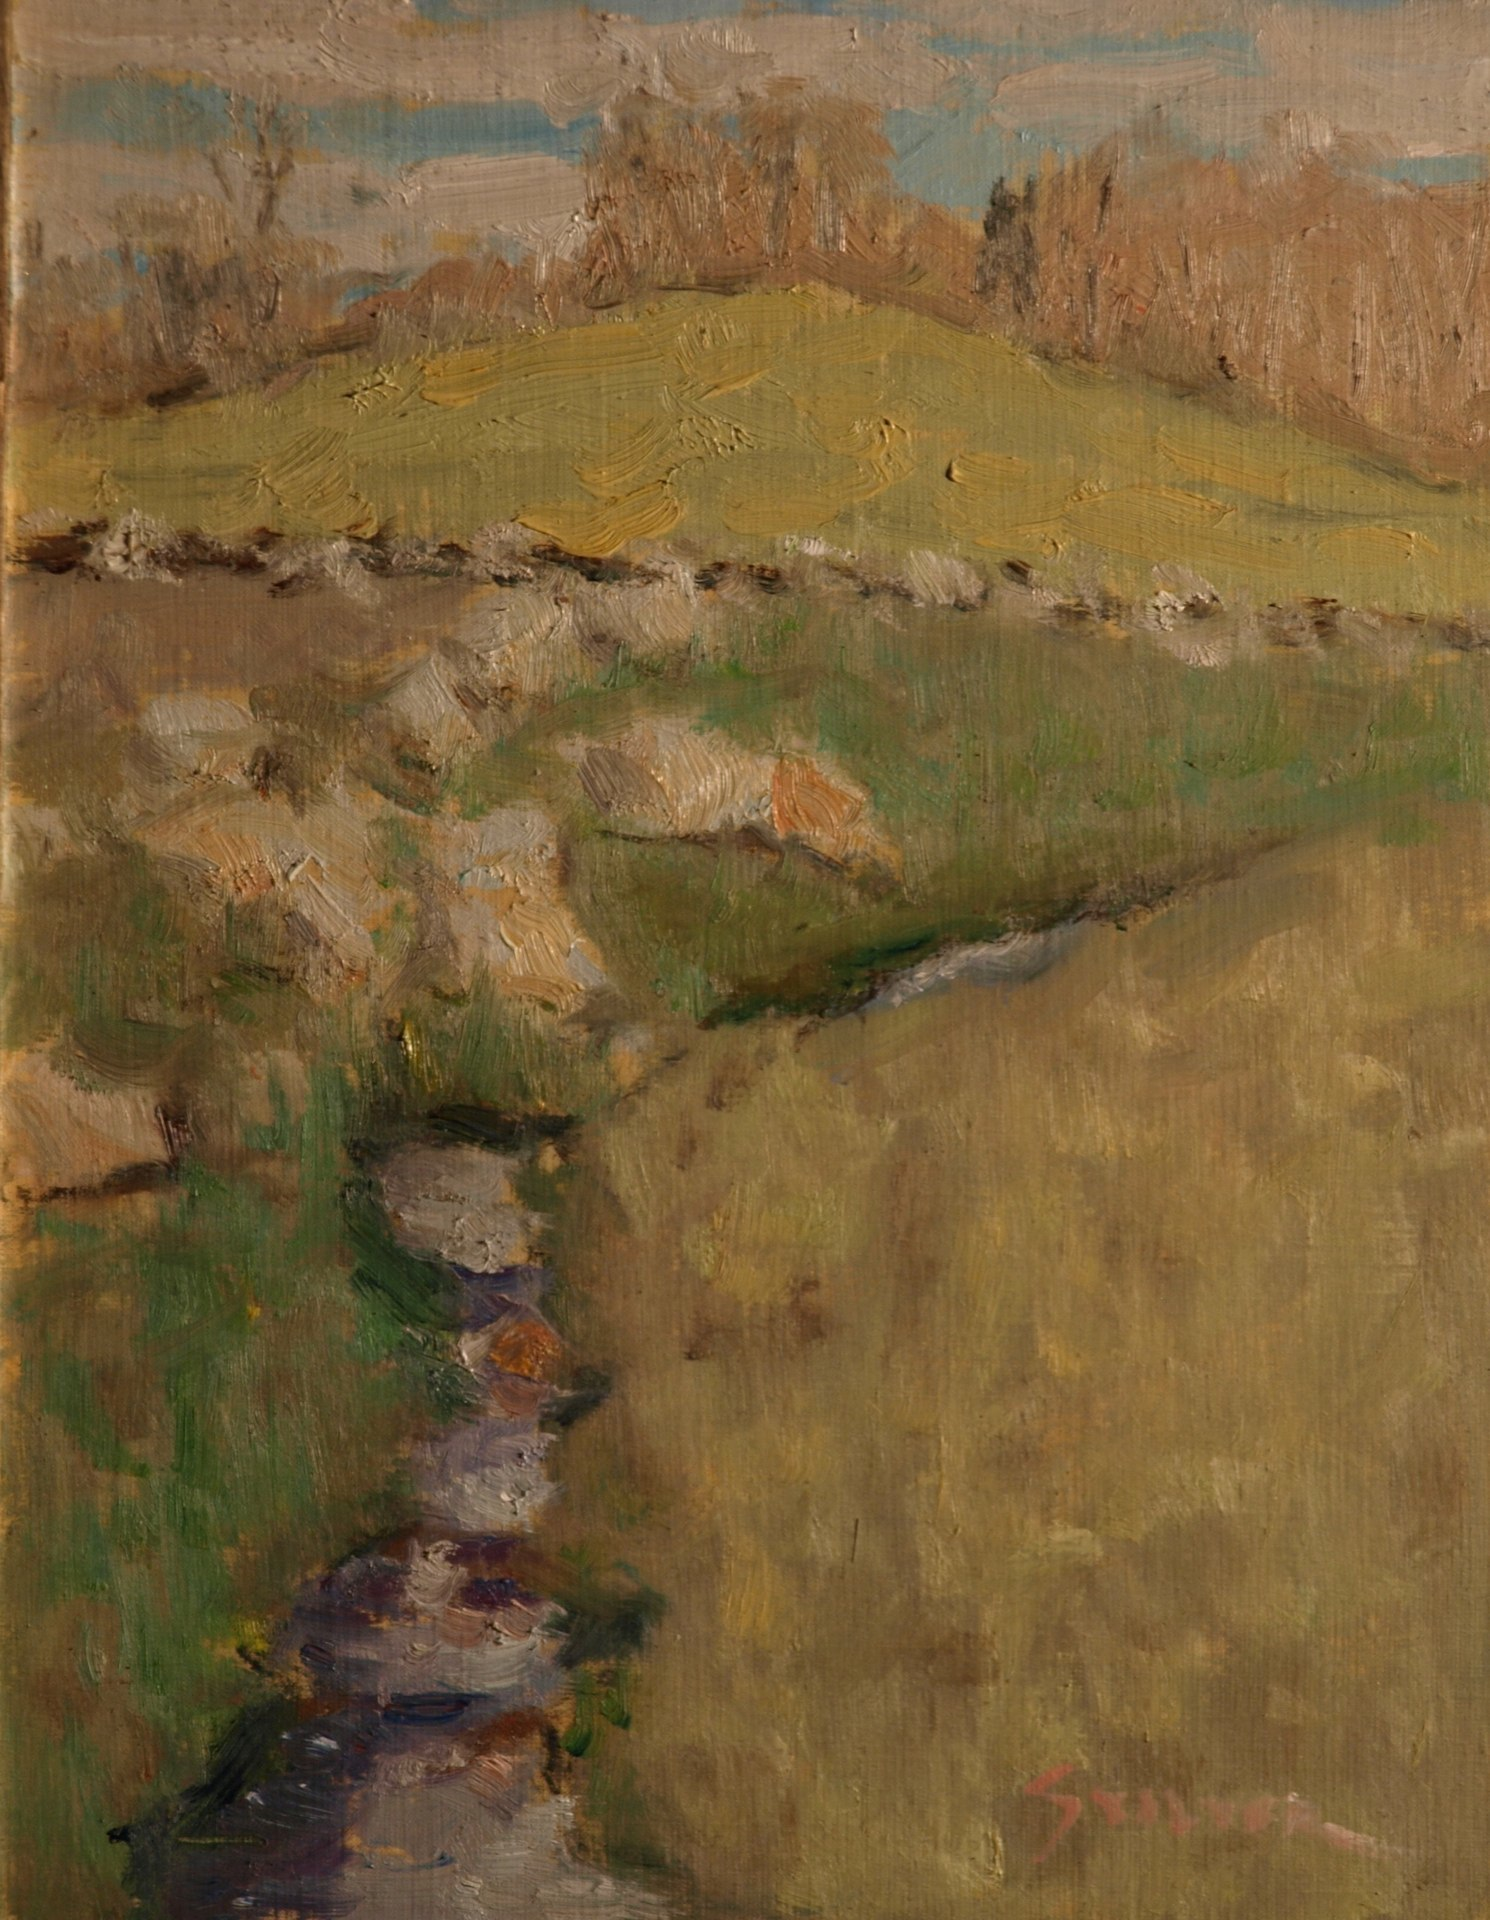 Early Spring Sunshine, Oil on Panel, 9 x 12 Inches, by Richard Stalter, $225